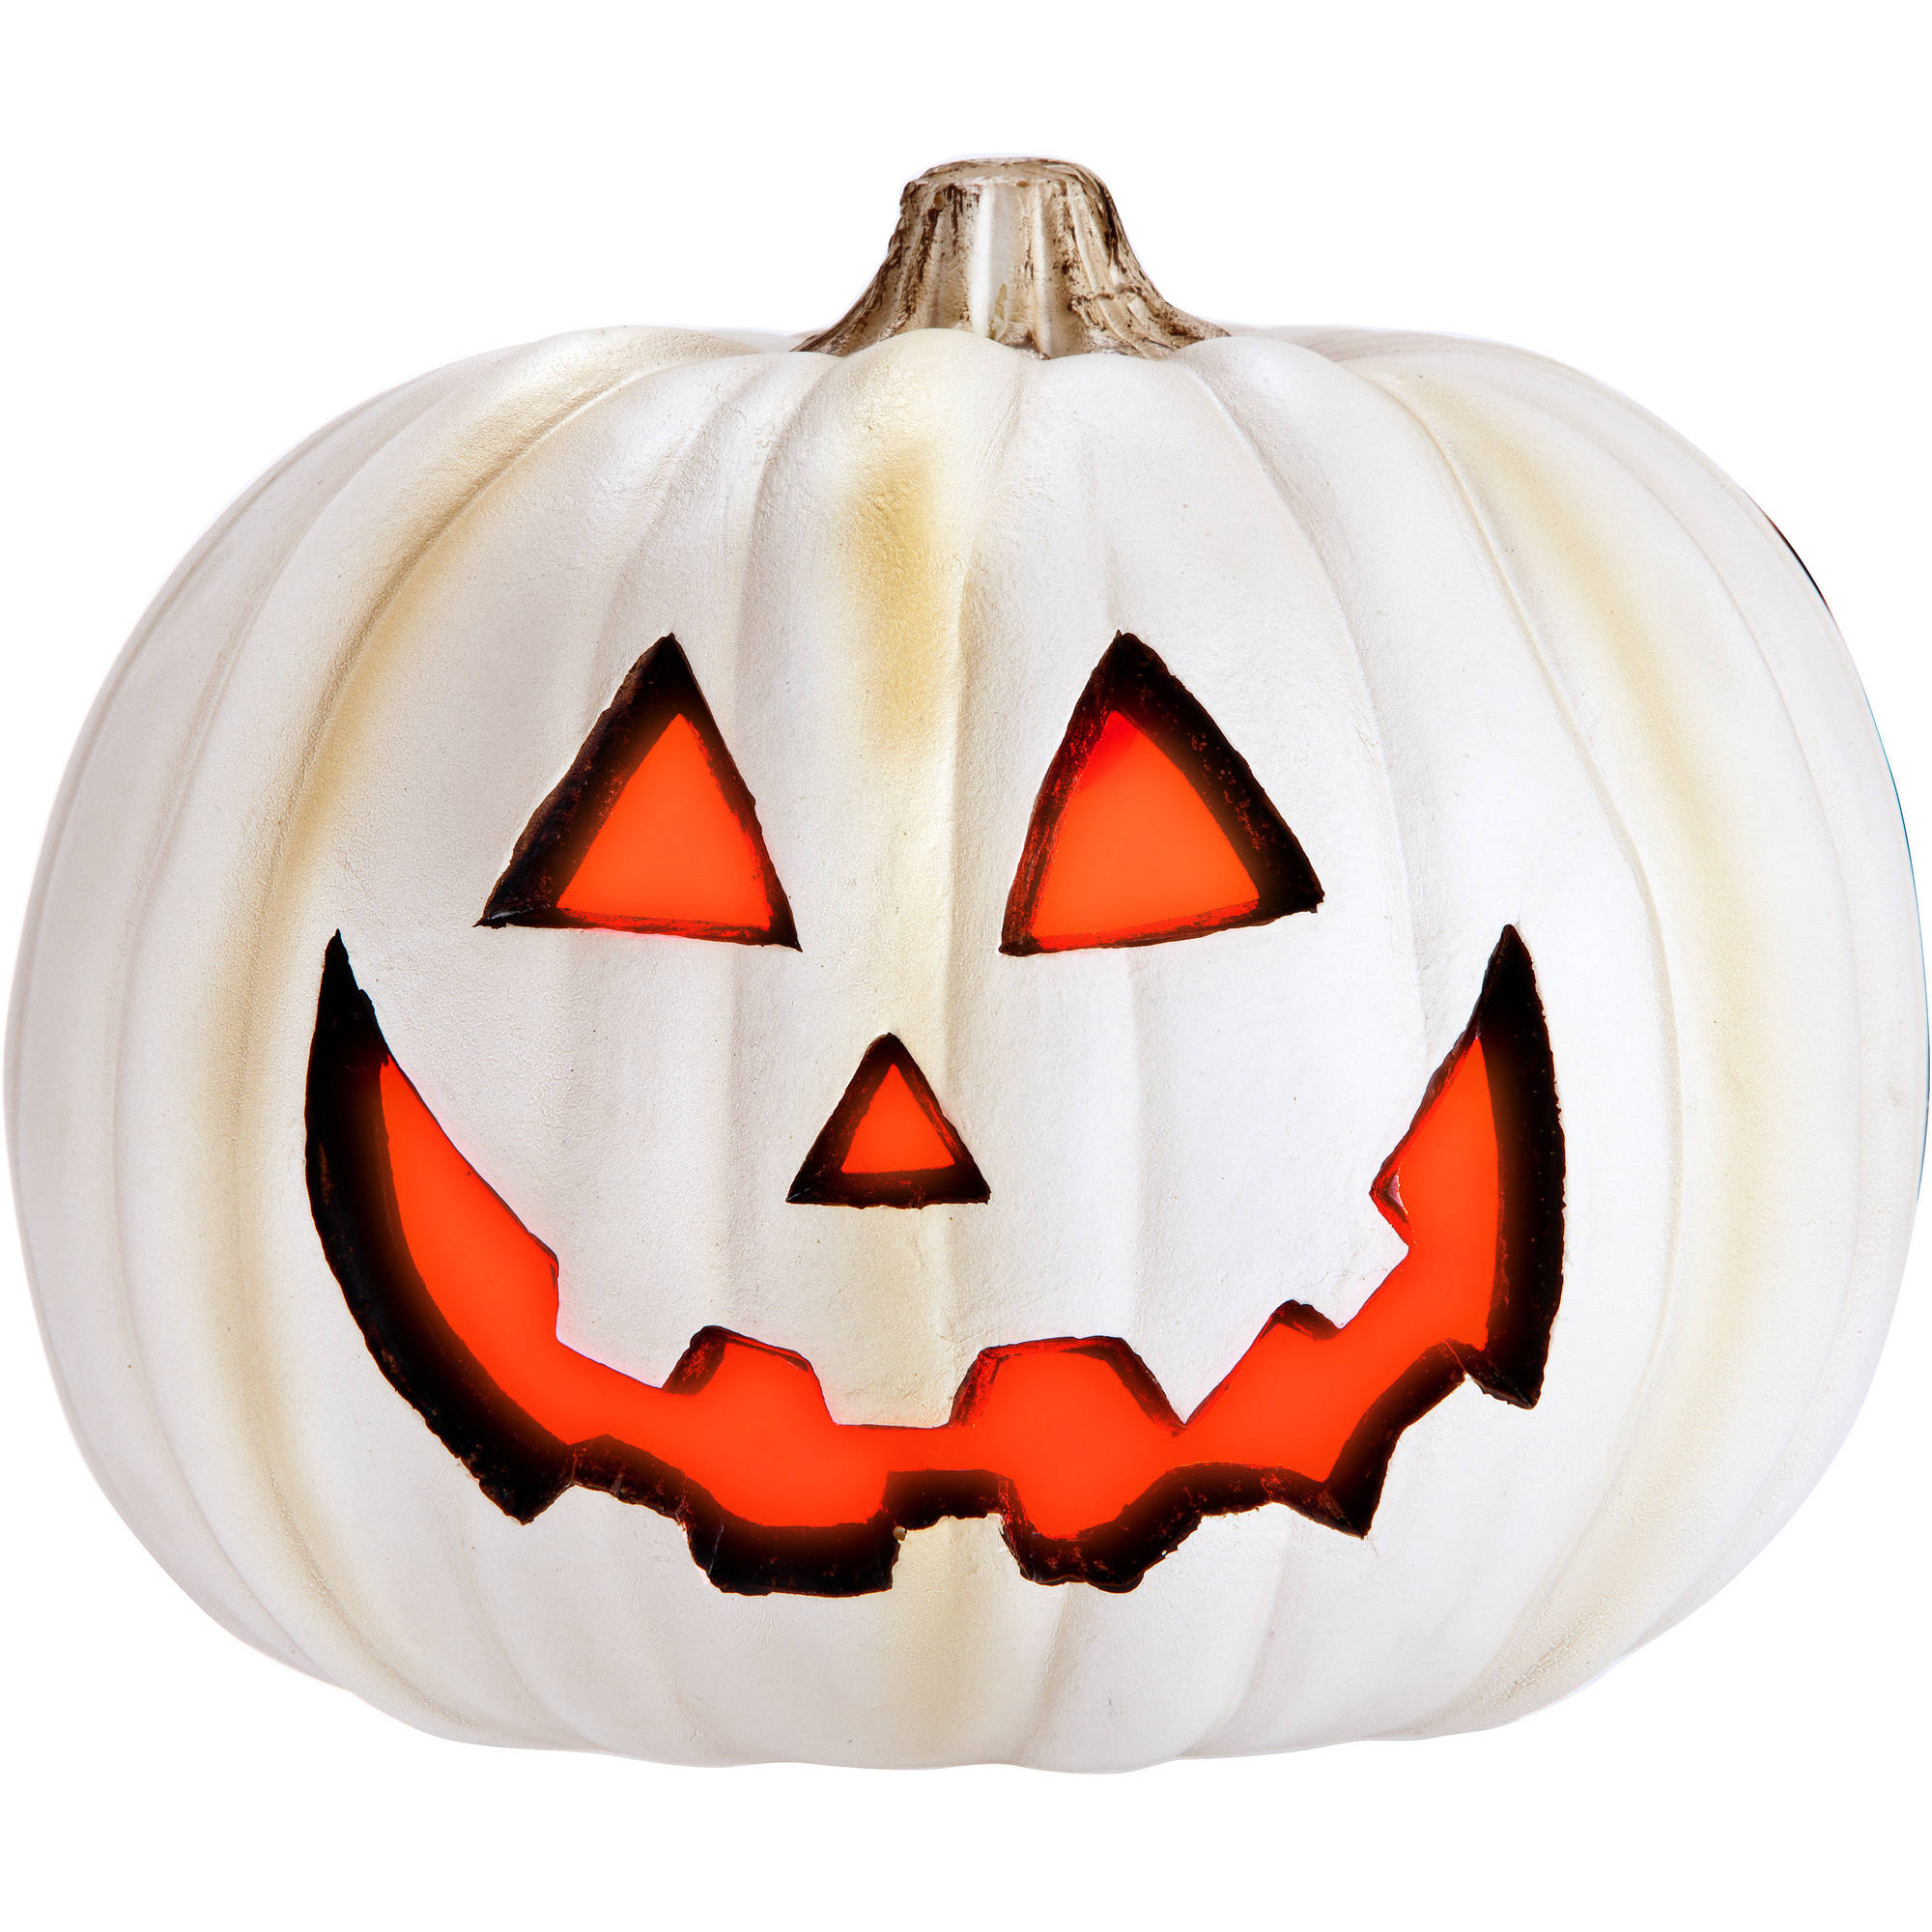 Molded Light Up Jack O Lantern, Stone Halloween Decoration